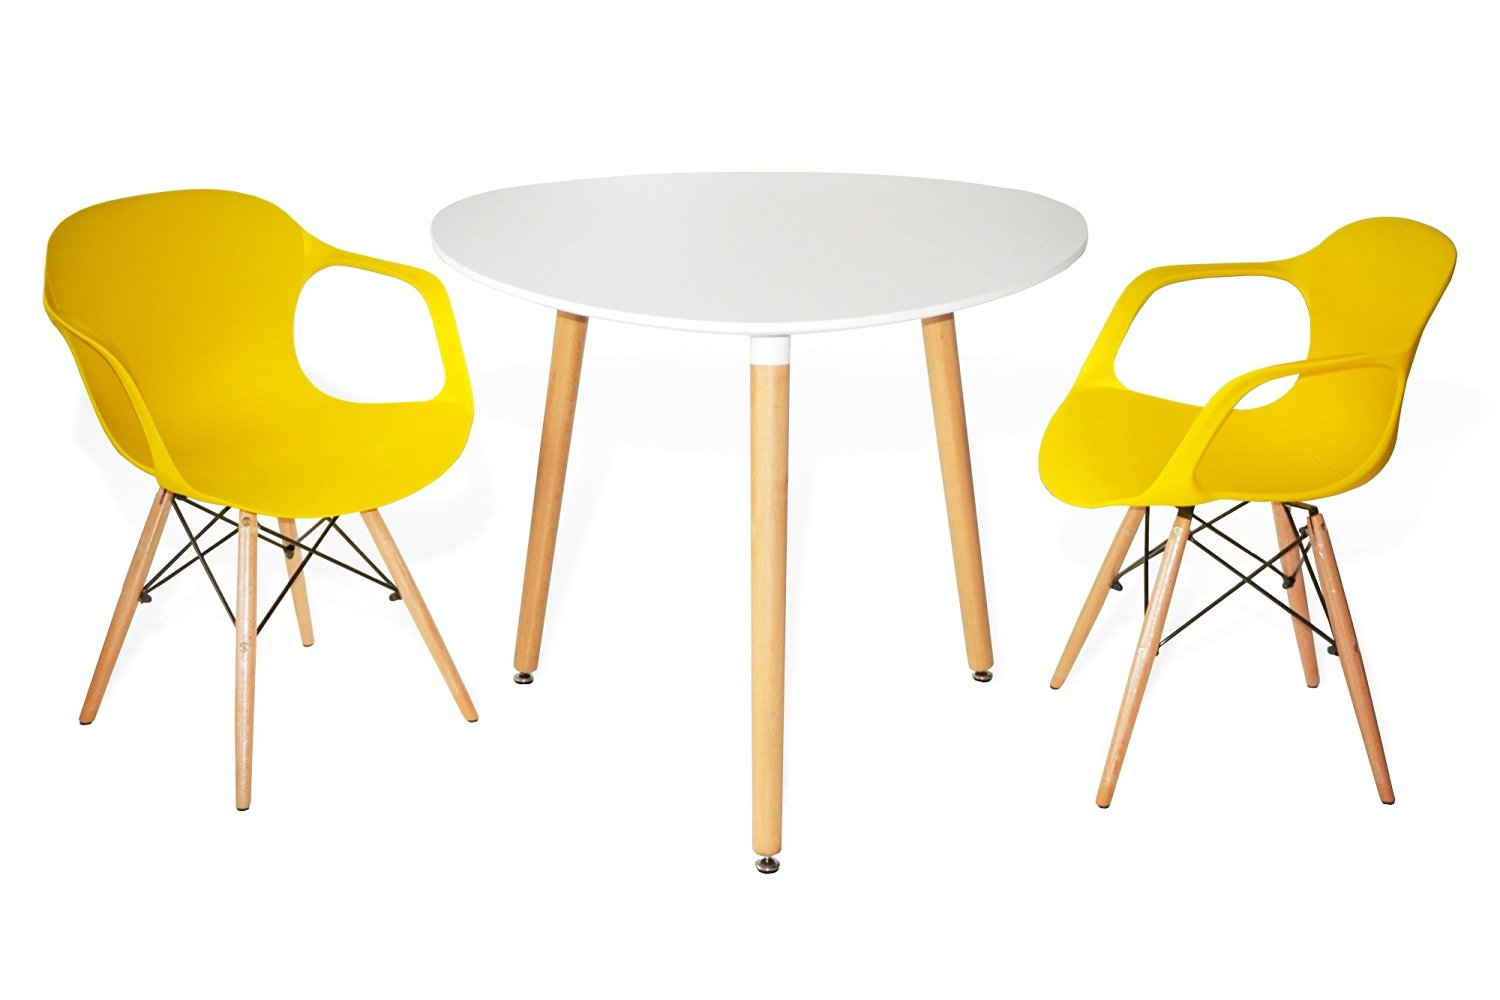 3-Piece Contemporary Plastic Dining Set: White Rounded Triangle Table with Modern Plastic Armchairs (variety of colors) (Yellow)